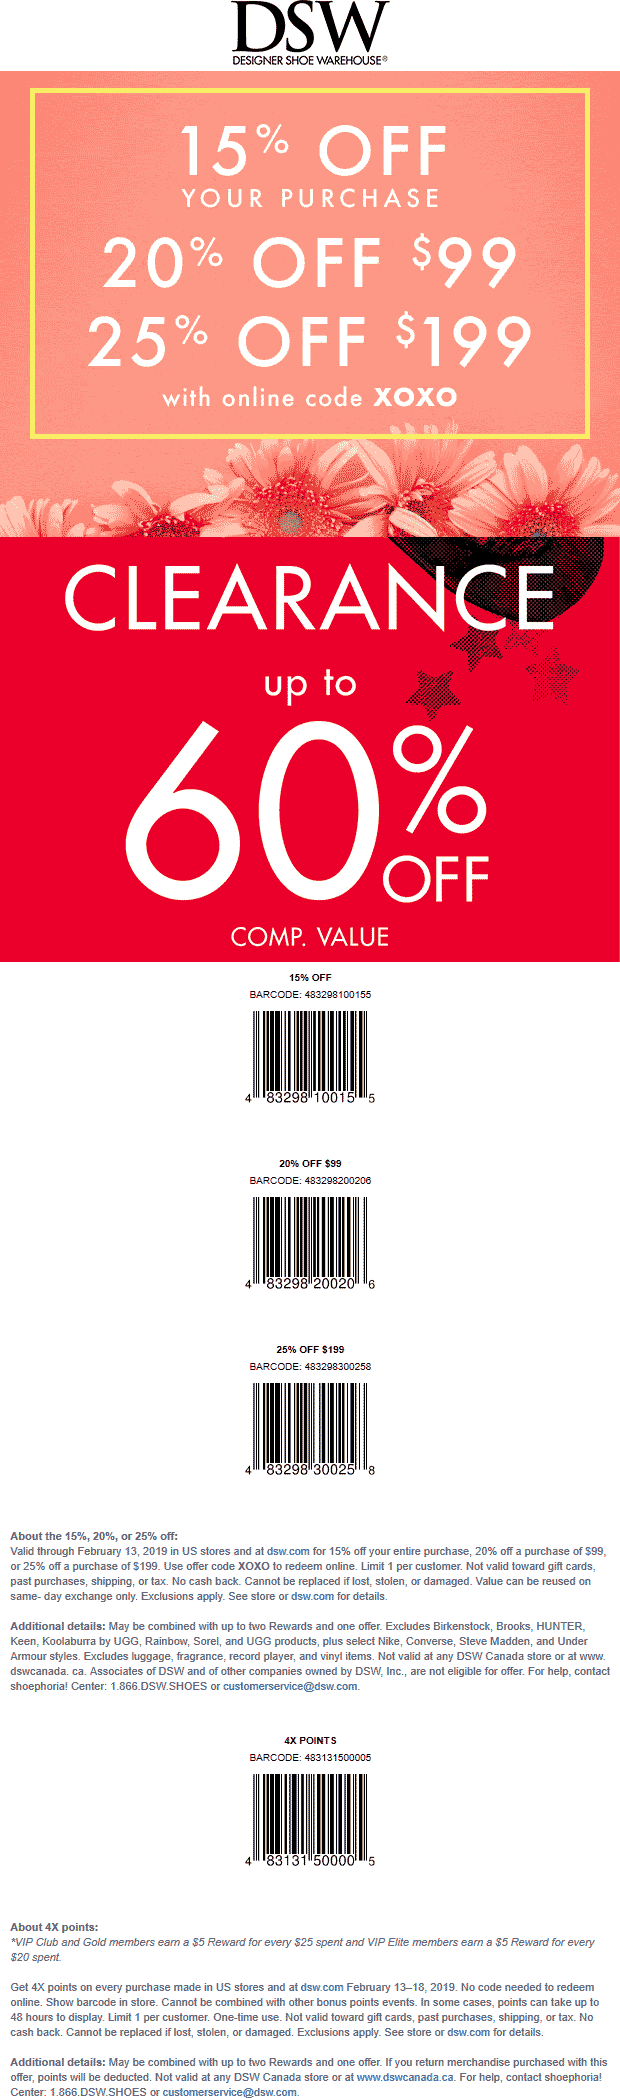 DSW coupons & promo code for [July 2021]